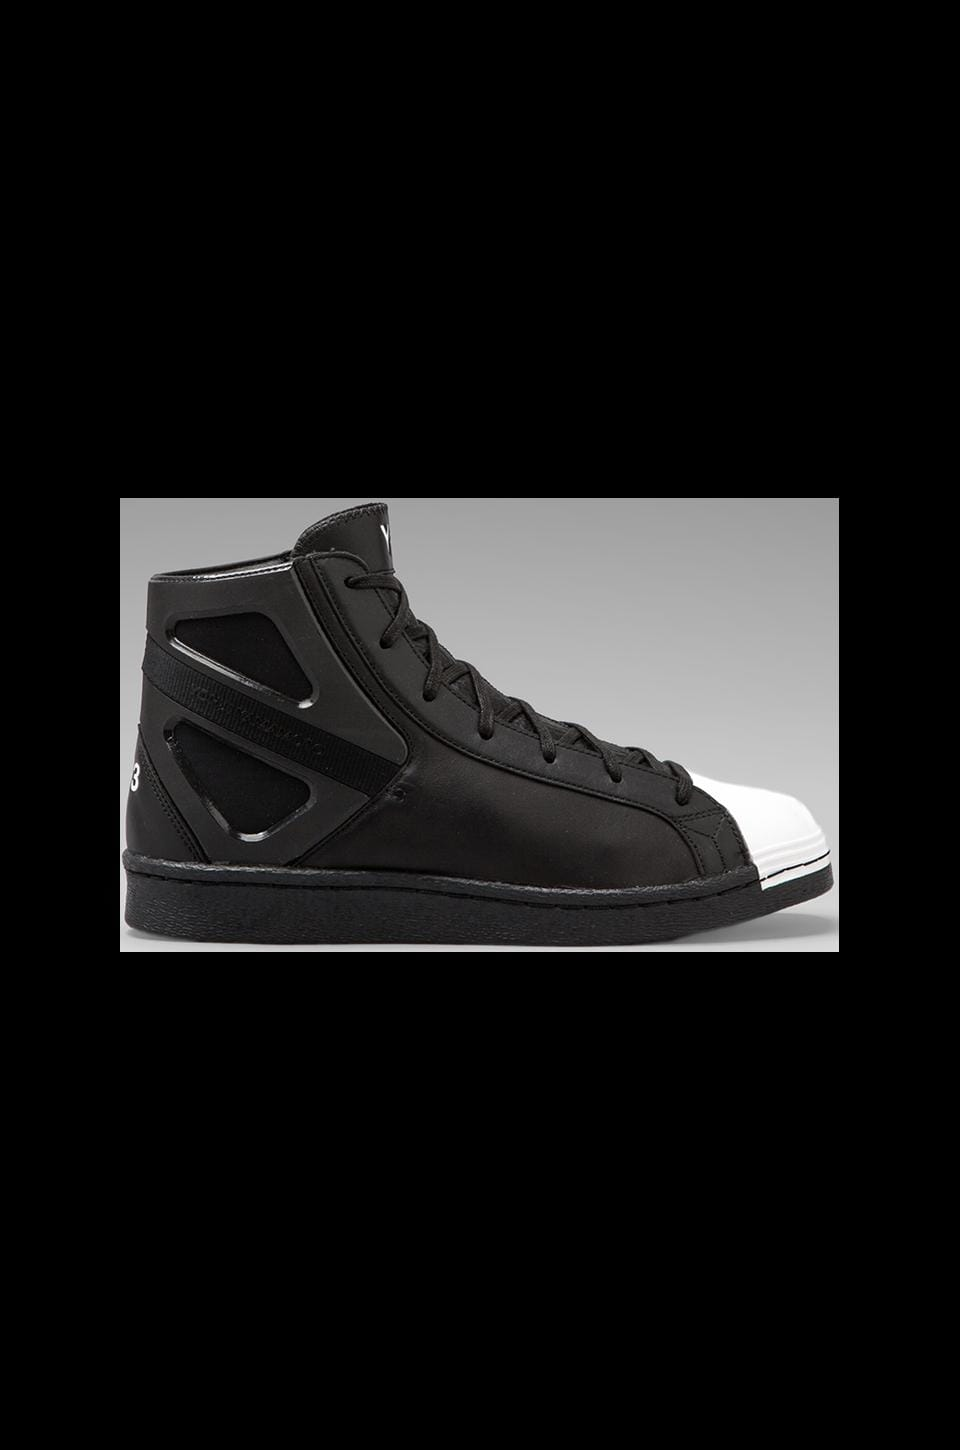 Y-3 Yohji Yamamoto Smooth Model in Black/ Black/ White